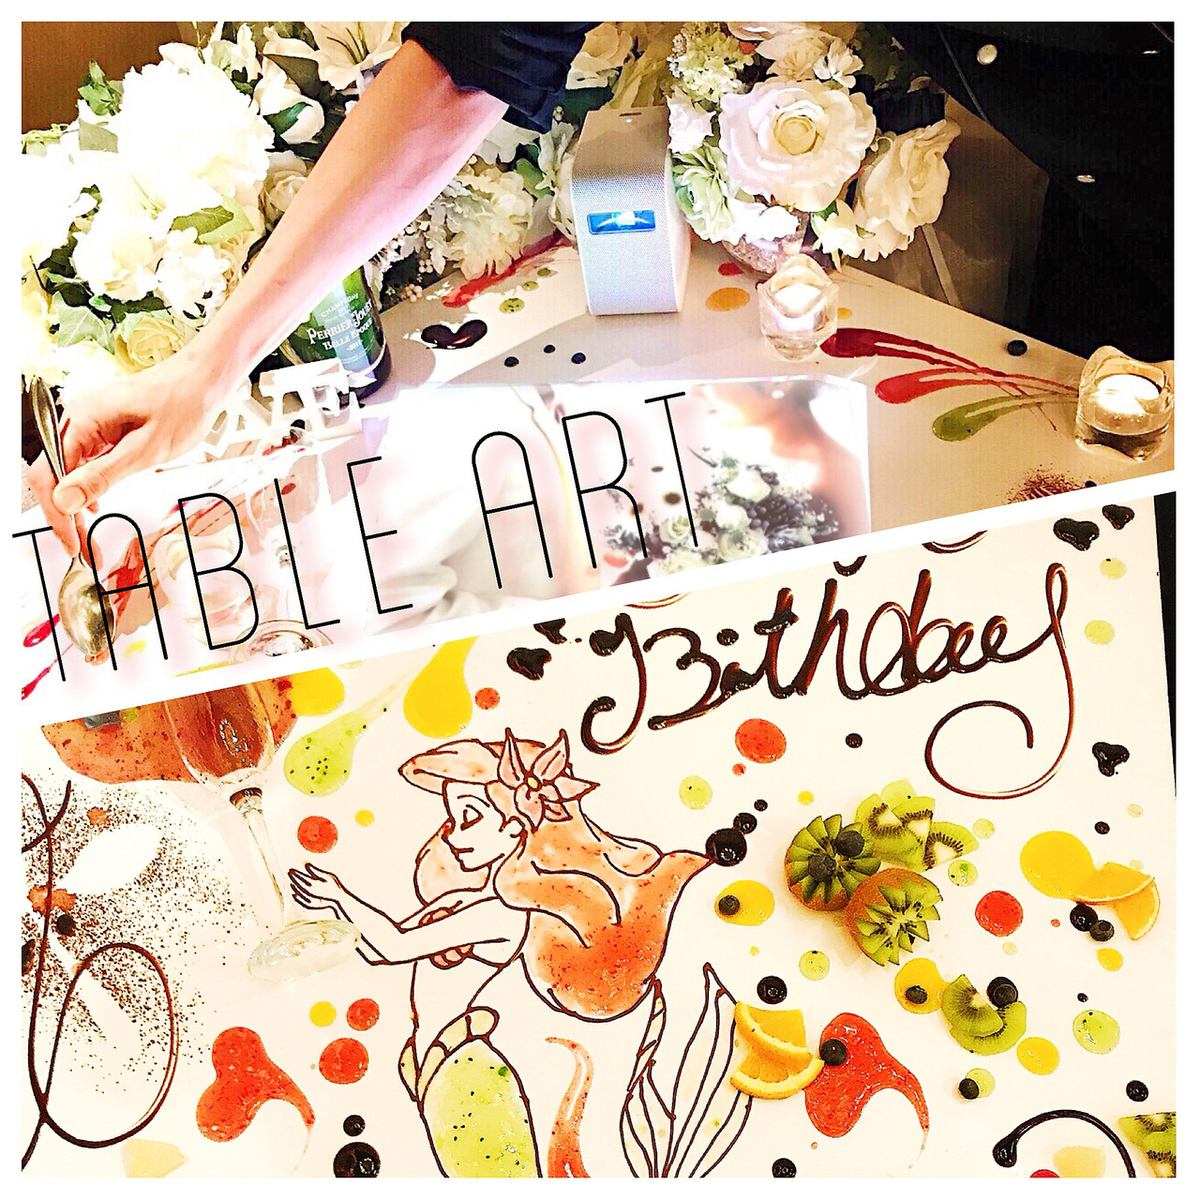 All seats private room ☆ ideal birthday party ★ Table art, surprise such as dress cake ★